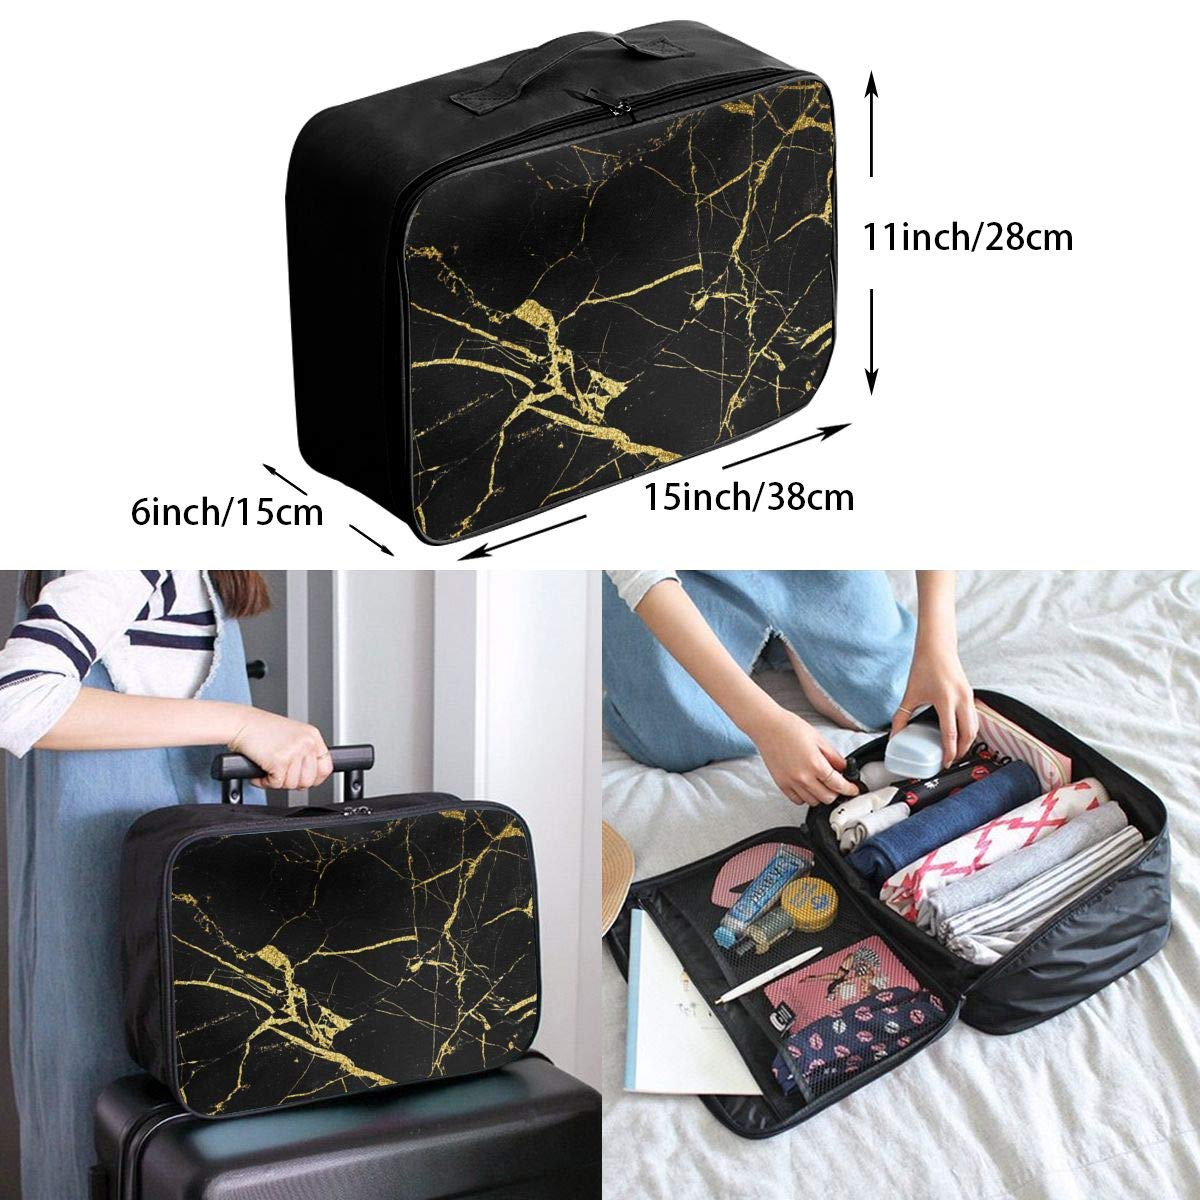 Men /& Women Chic Black And Gold Marble Texture Portable Luggage Duffel Bag Lightweight Large Capacity Travel Bags Carry-on In Luggage Handle